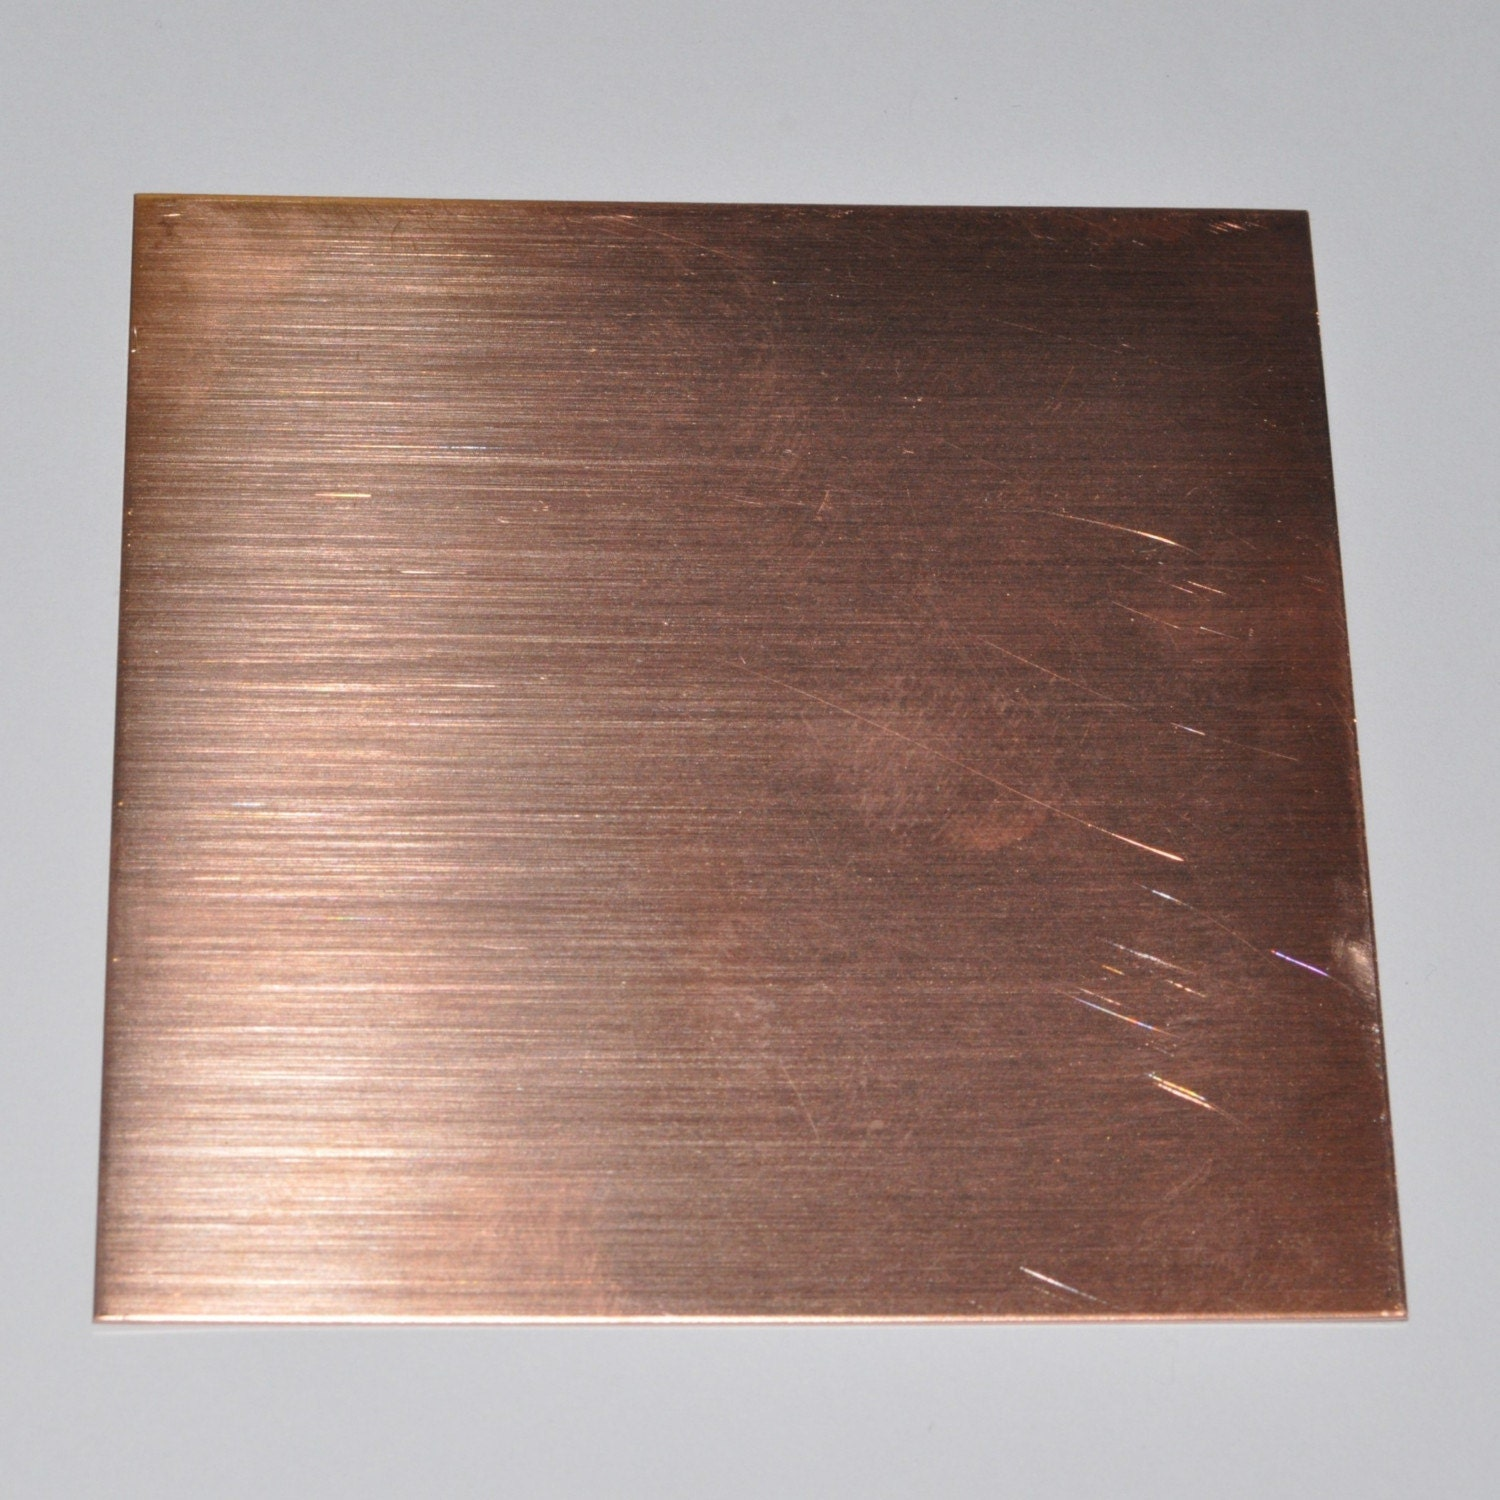 20 G Bare Solid Copper Sheet Metal 20 Gauge 6 X By